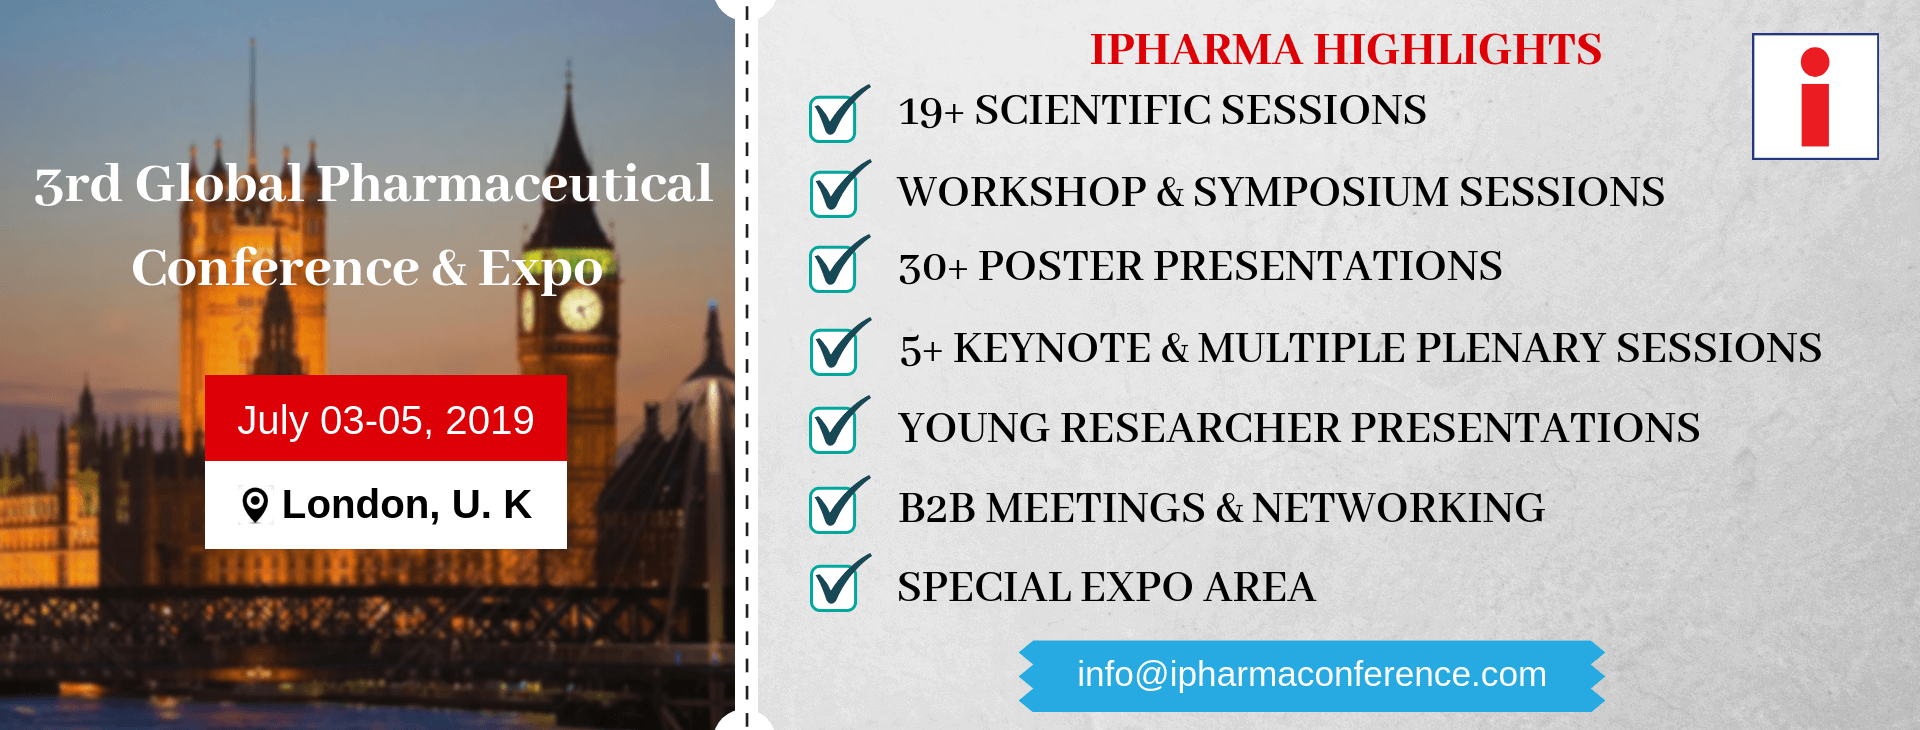 ipharma banner- conference highlights